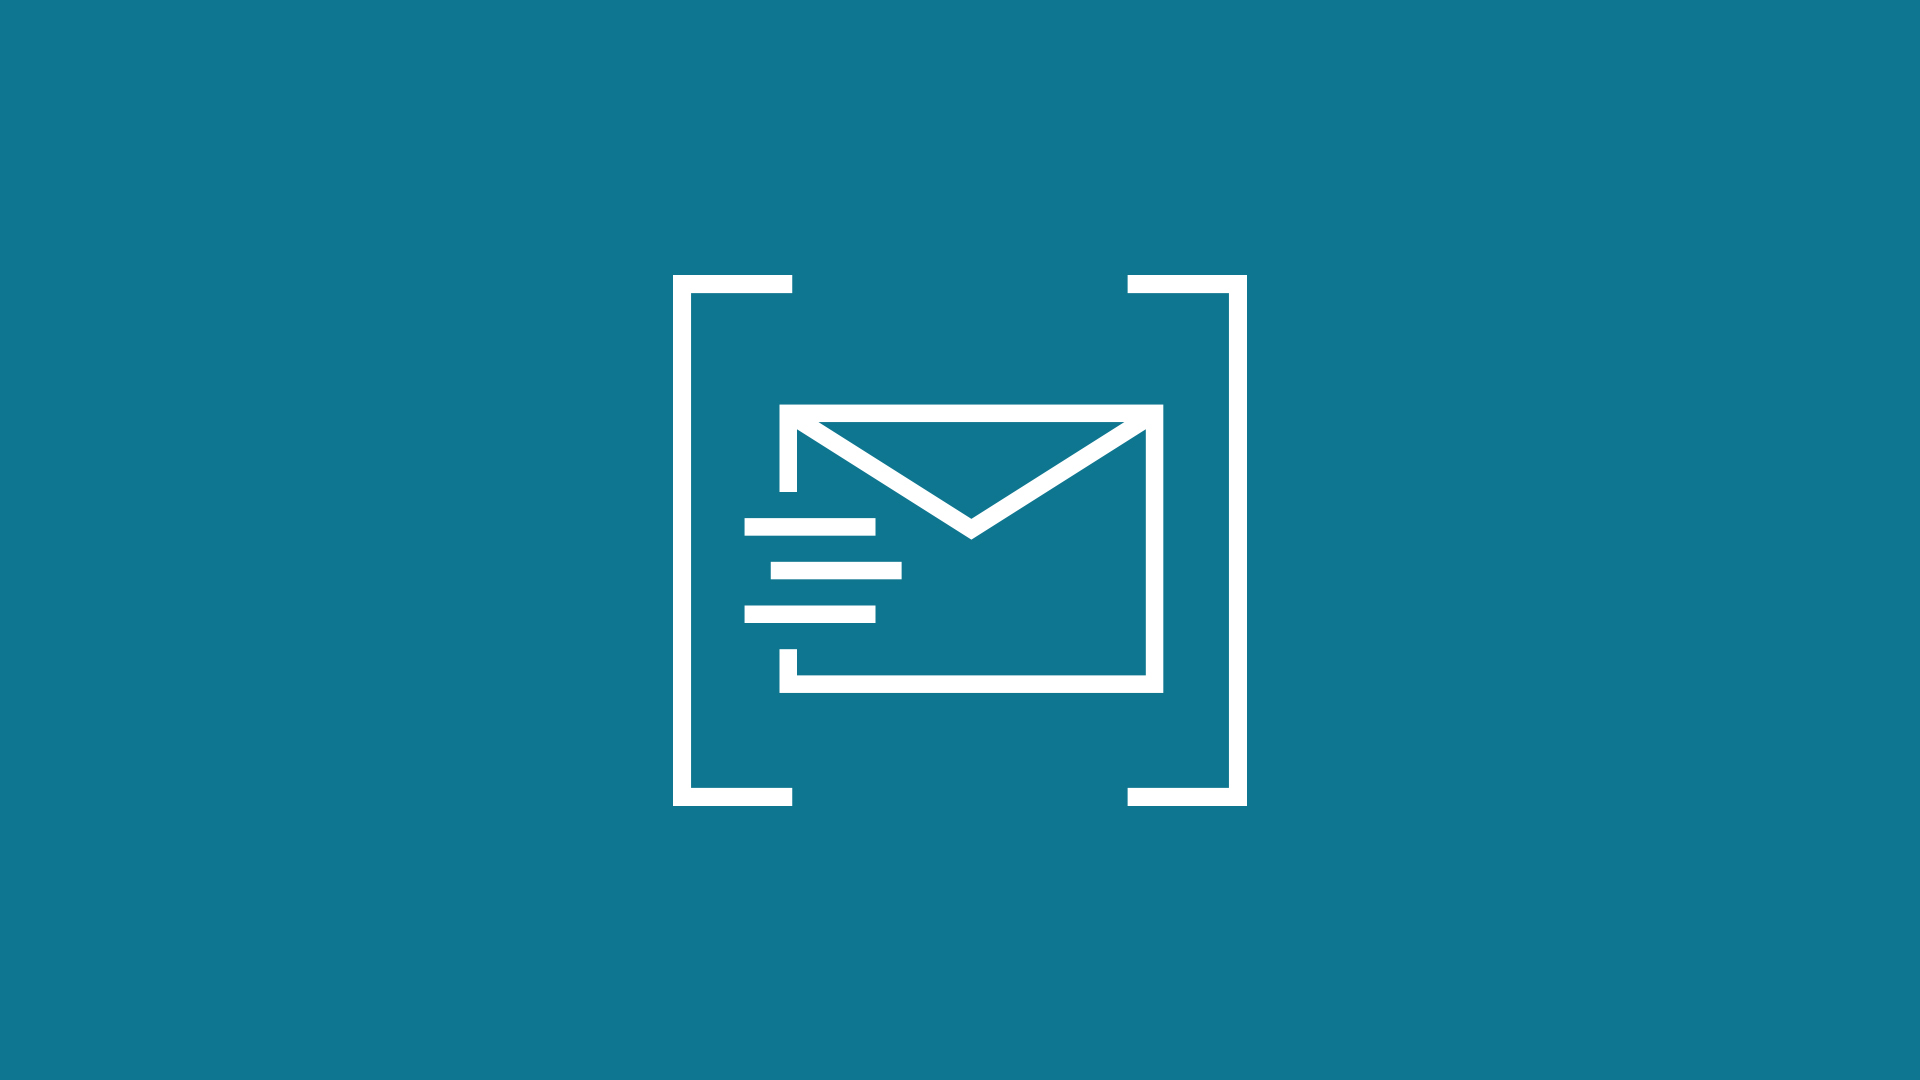 Icon of an envelope